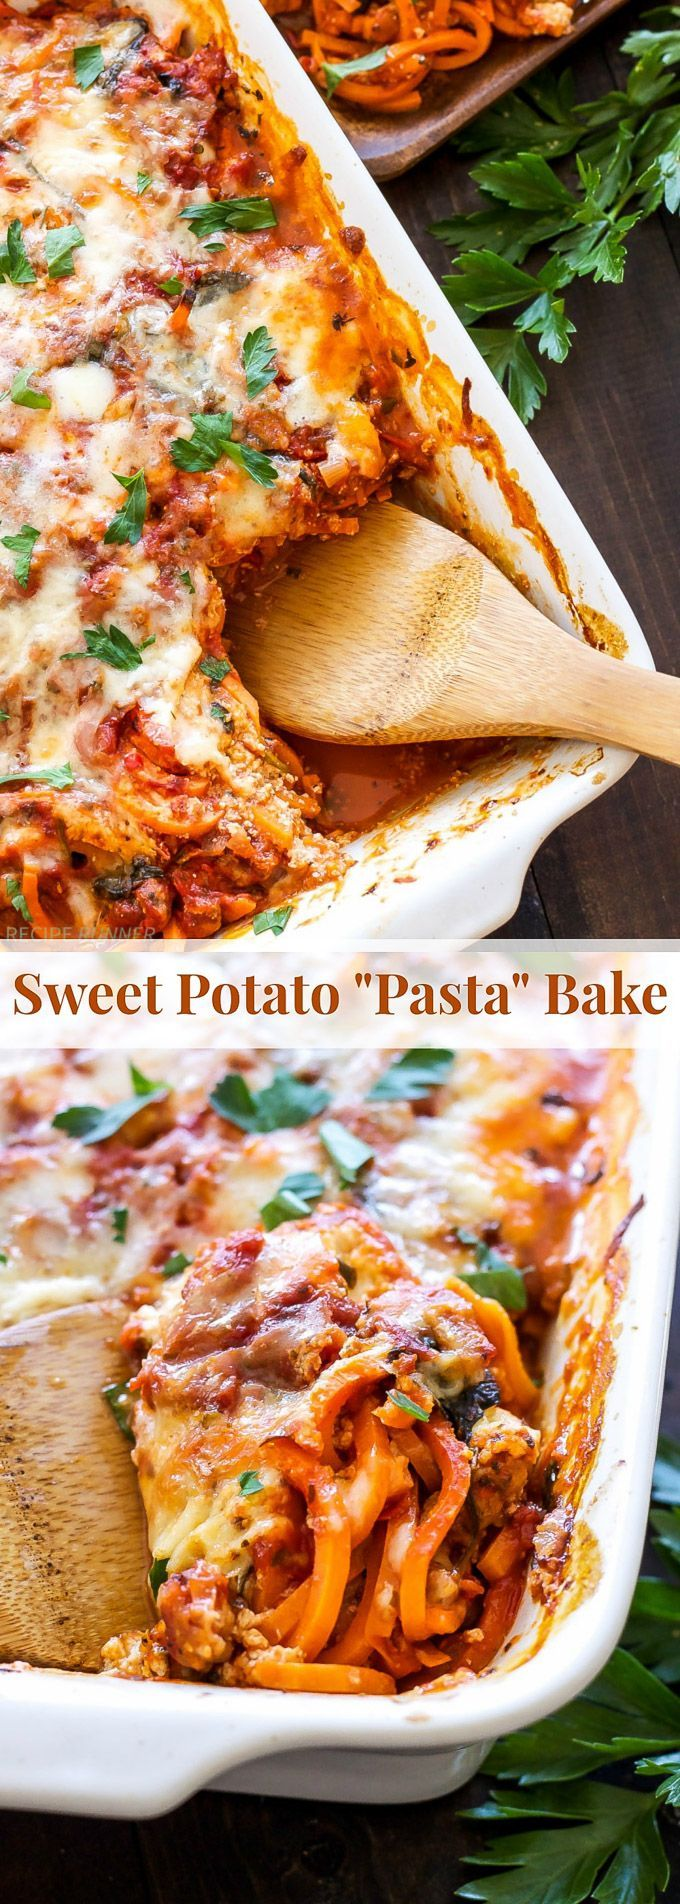 """Sweet Potato """"Pasta"""" Bake   Skip traditional pasta and use spiralized sweet potatoes for a healthier twist on cheesy baked pasta! {gluten free}"""